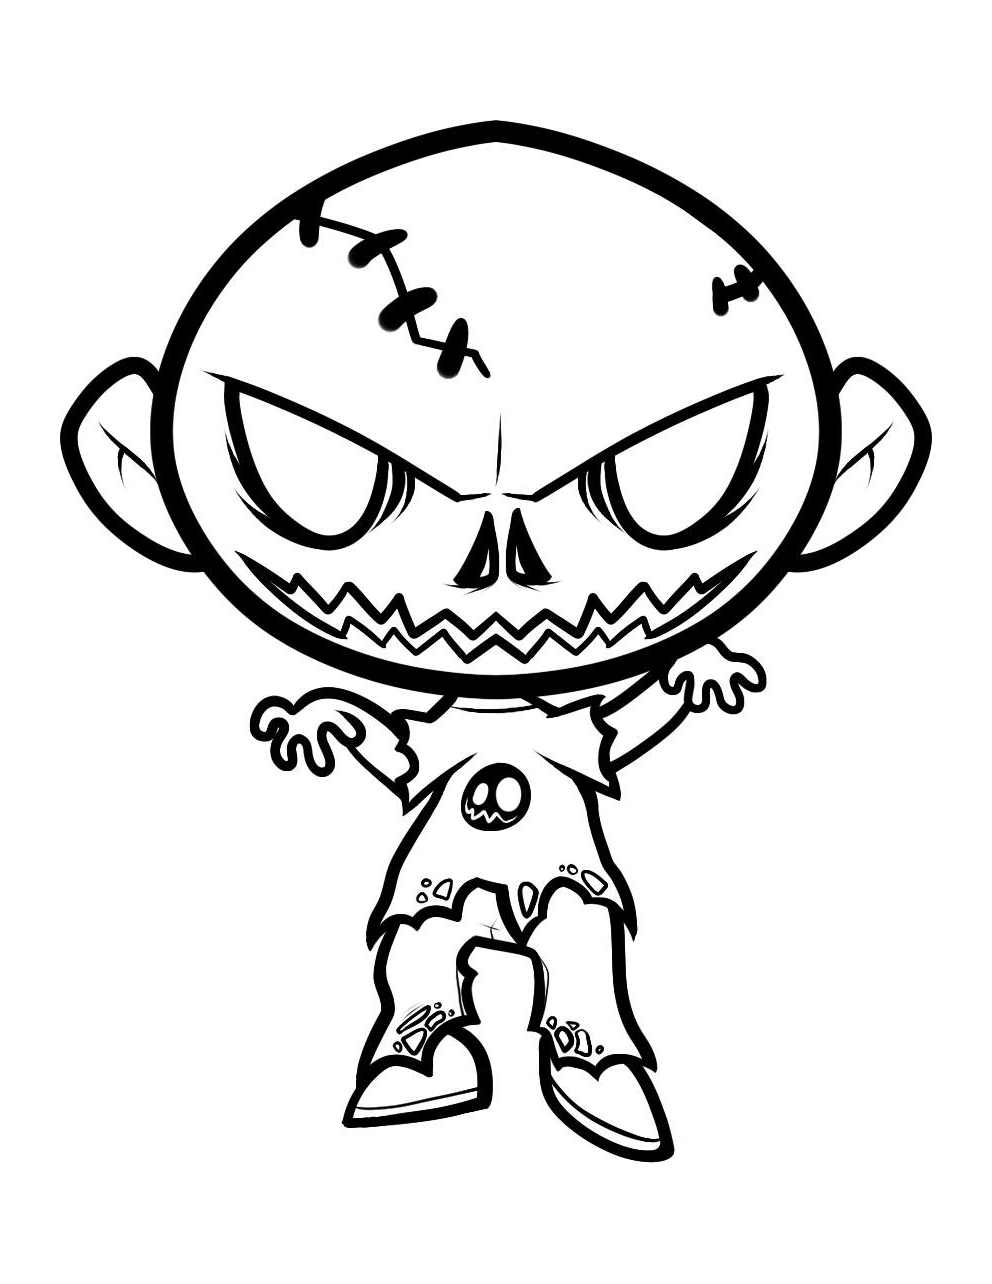 Funny Zombies coloring page for kids